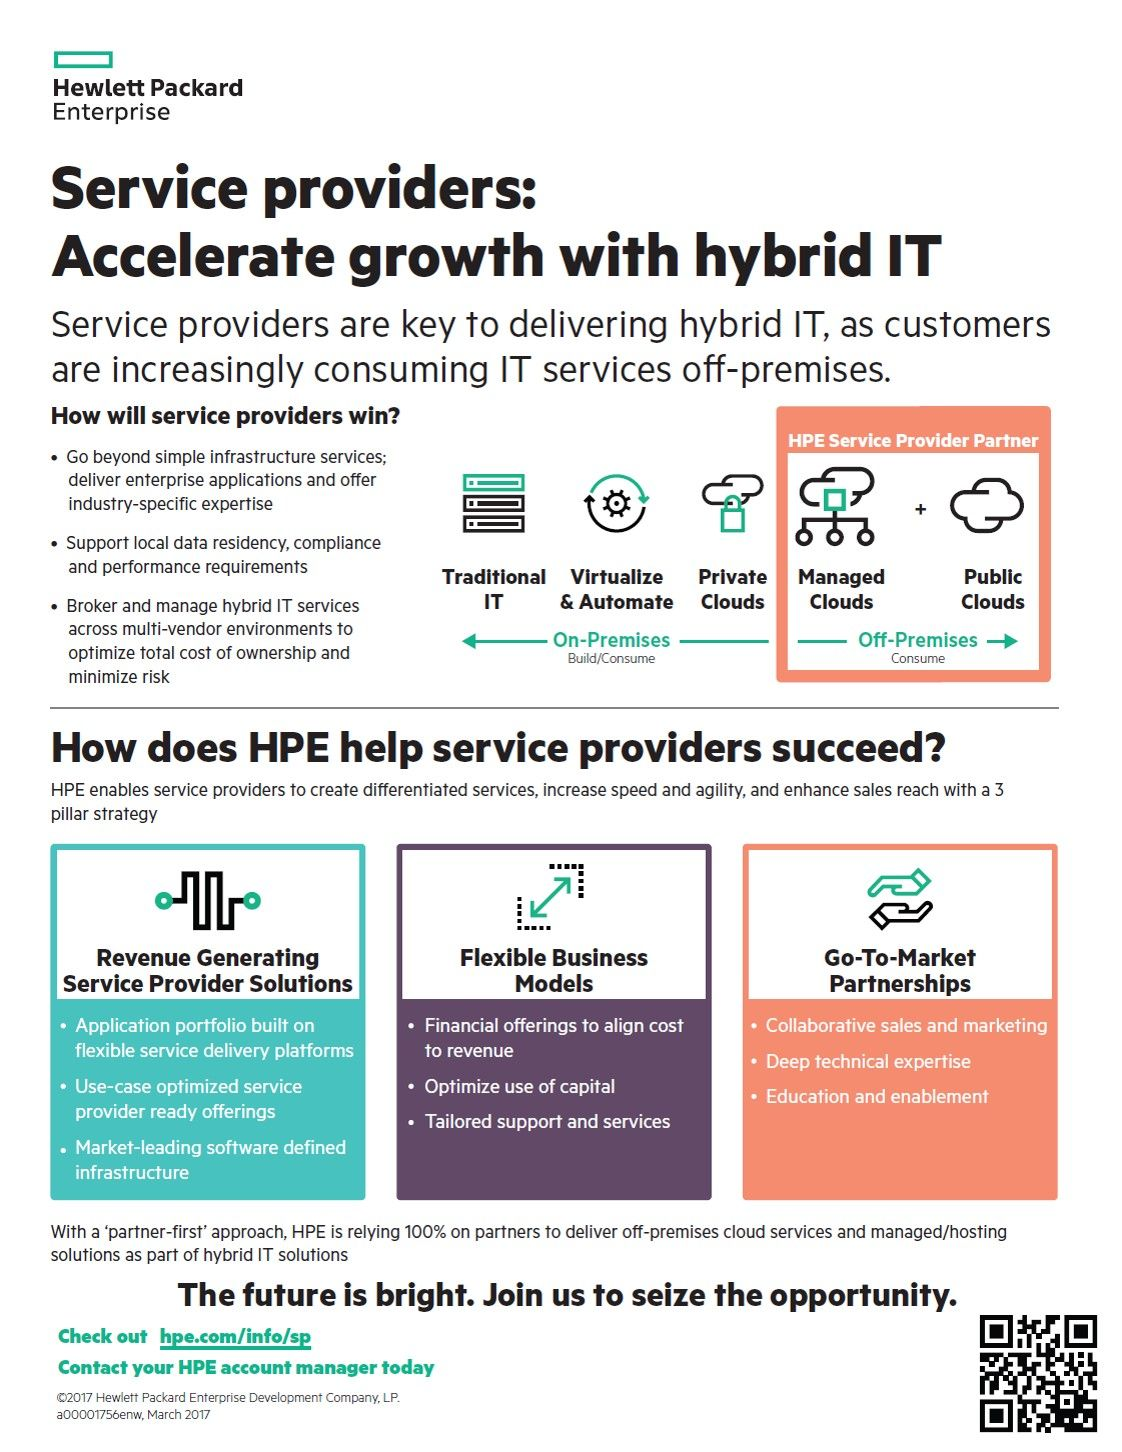 HPE-SP-Strategy-Infographic-March-2017-image.jpg